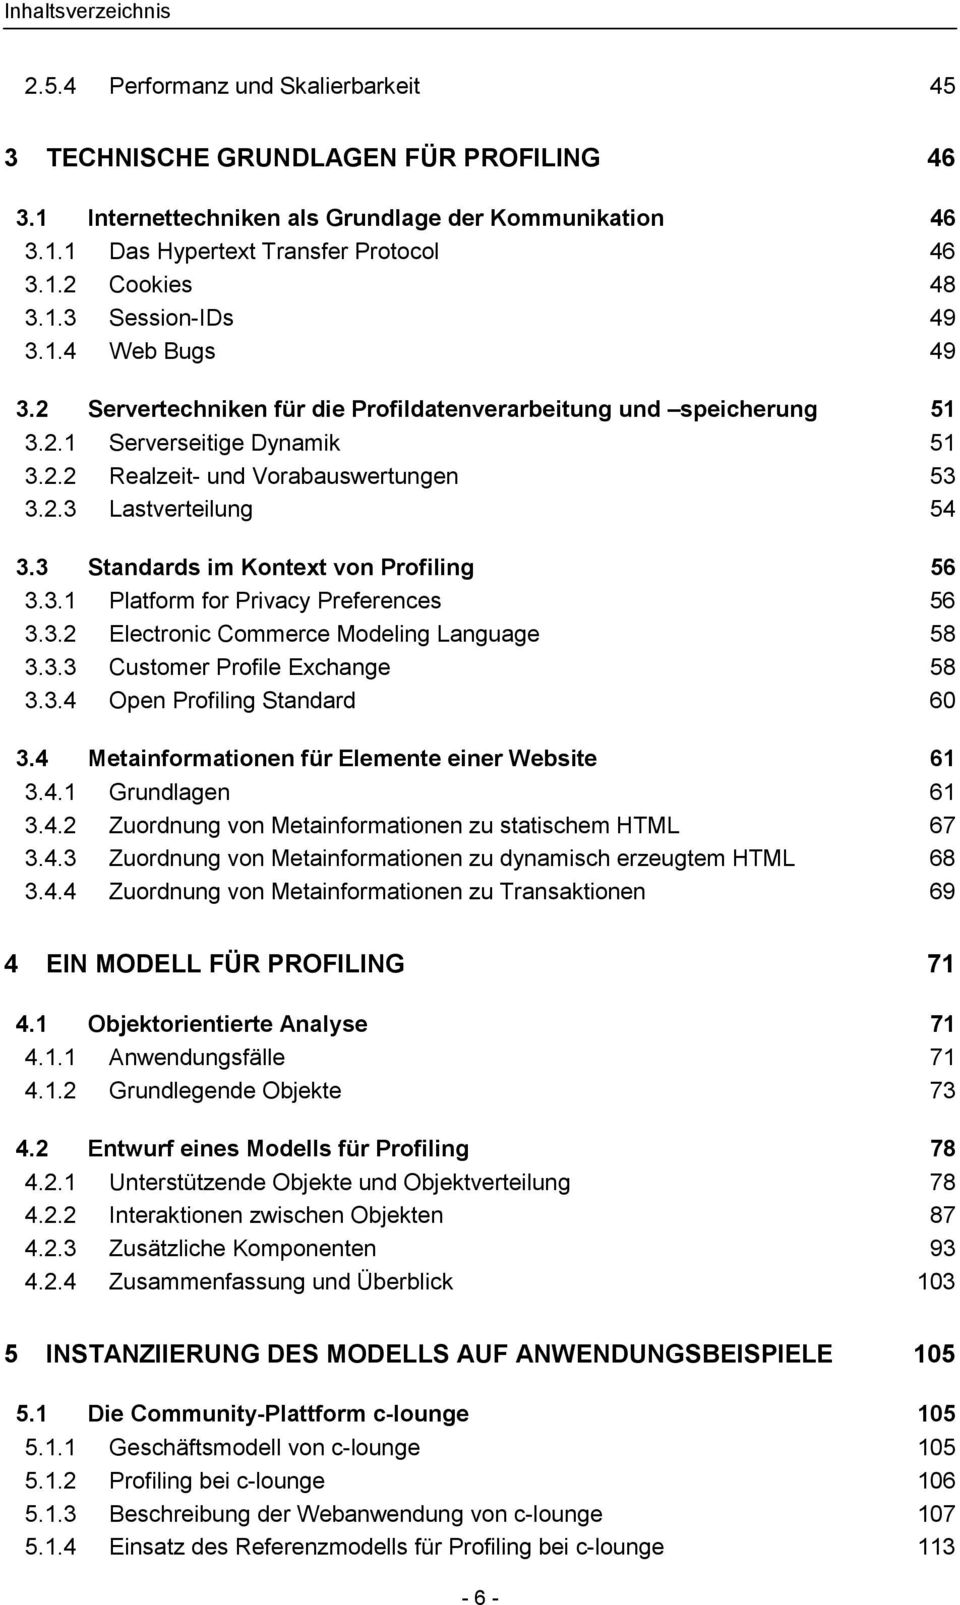 2.3 Lastverteilung 54 3.3 Standards im Kontext von Profiling 56 3.3.1 Platform for Privacy Preferences 56 3.3.2 Electronic Commerce Modeling Language 58 3.3.3 Customer Profile Exchange 58 3.3.4 Open Profiling Standard 60 3.